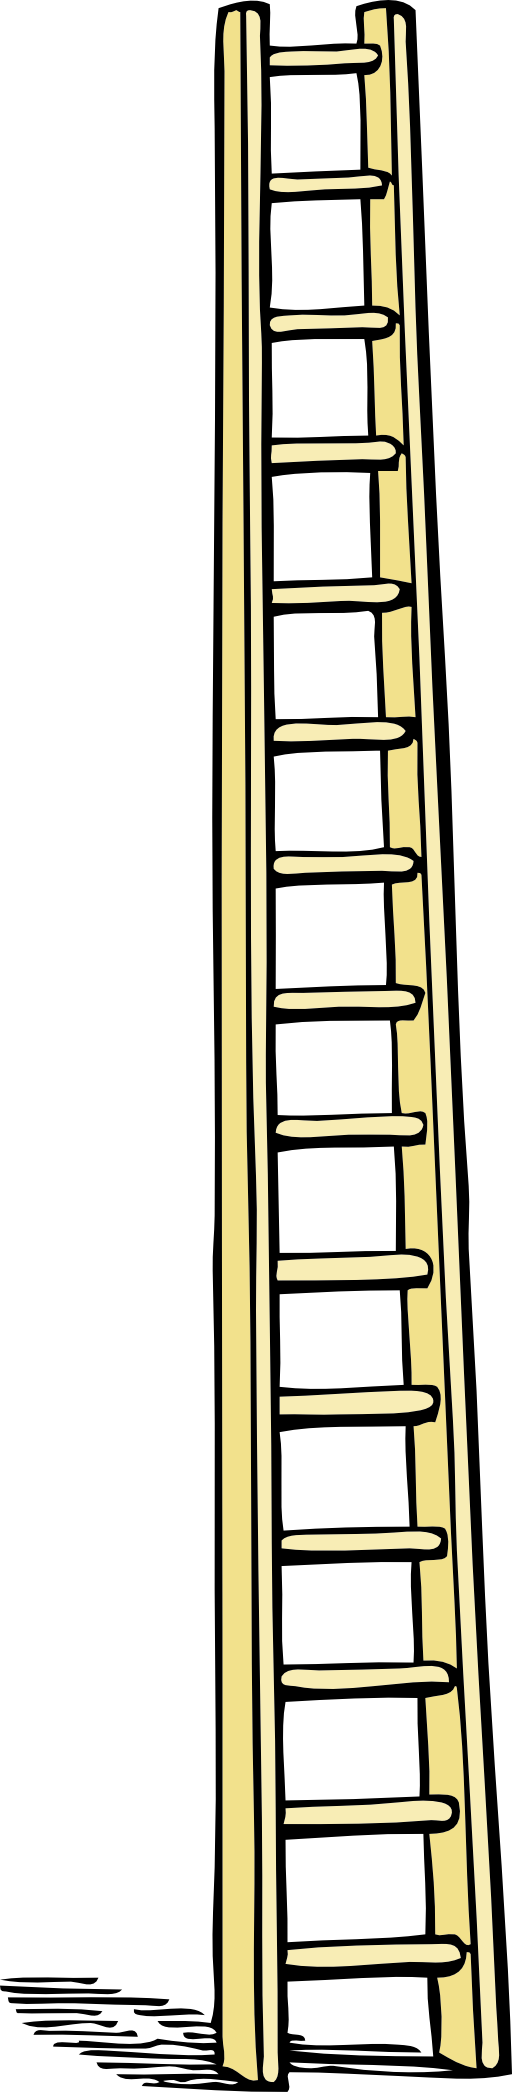 Ladder x d png. Gate clipart tall